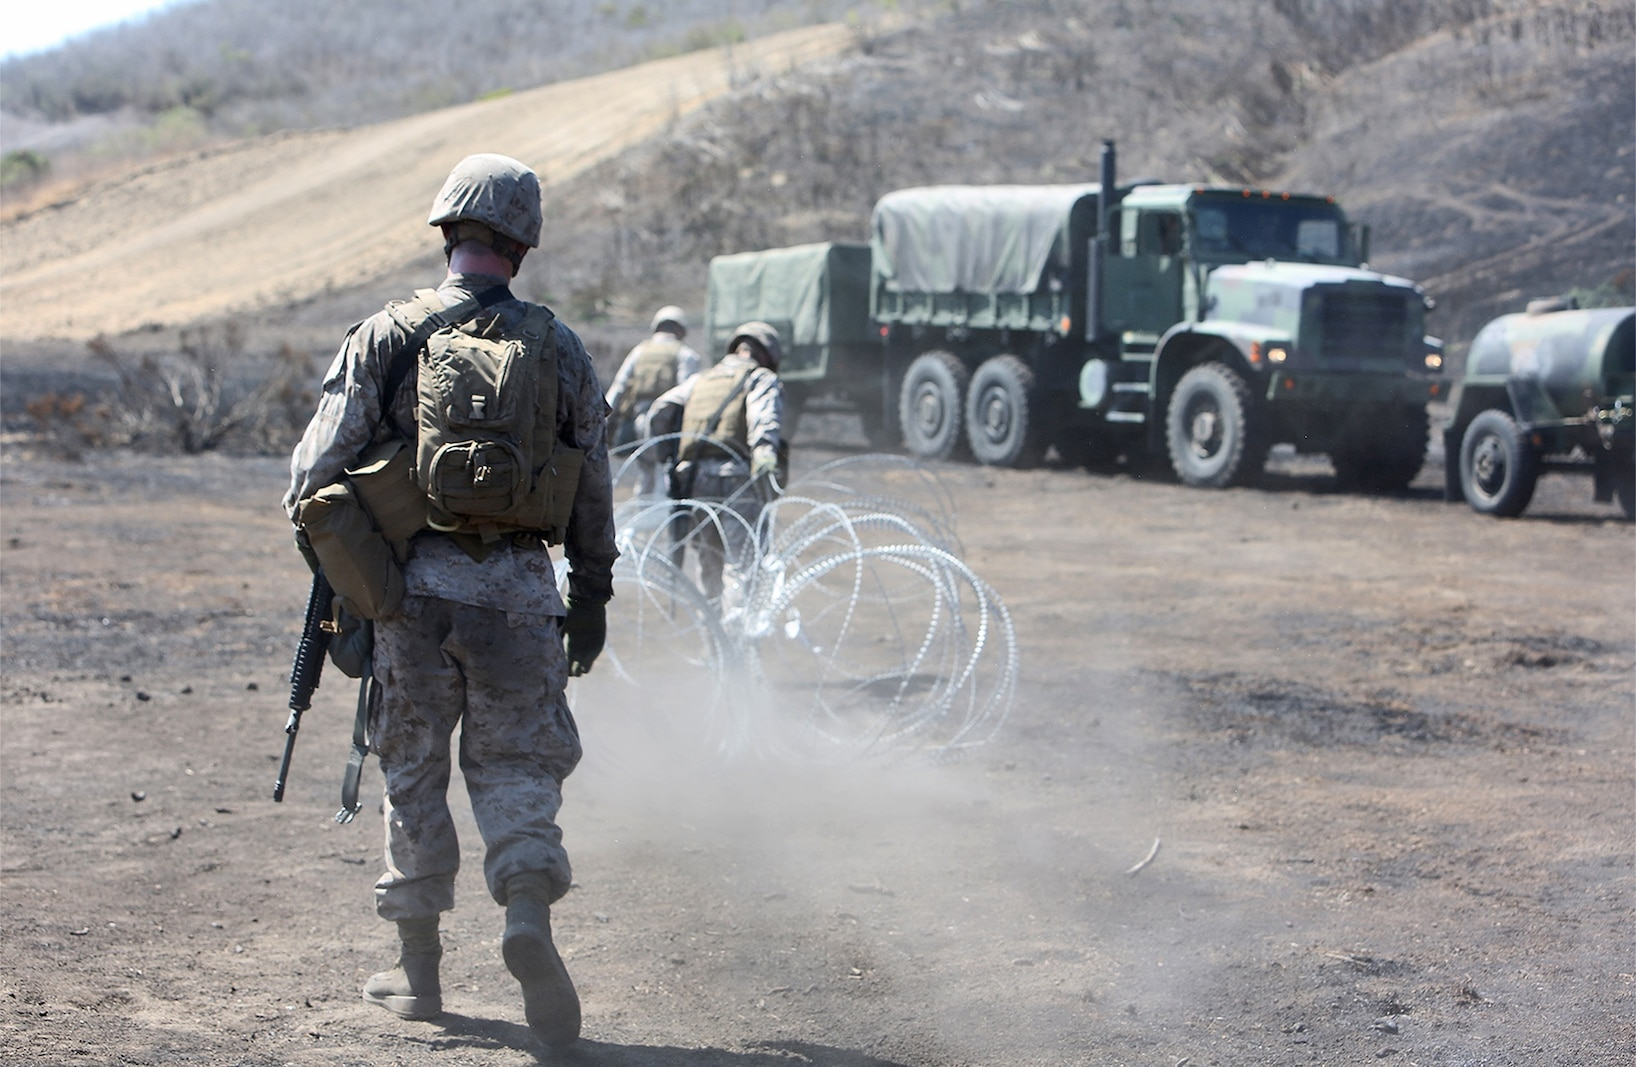 Marines with Combat Logistics Battalion 5, 1st Marine Logistics Group, set up a perimeter using concertina wire during a combat operations center exercise aboard Camp Pendleton, Calif., Sept. 5, 2013. The COCEX requires Marines to rapidly set up, disassemble and displace command nodes in an expeditionary environment.